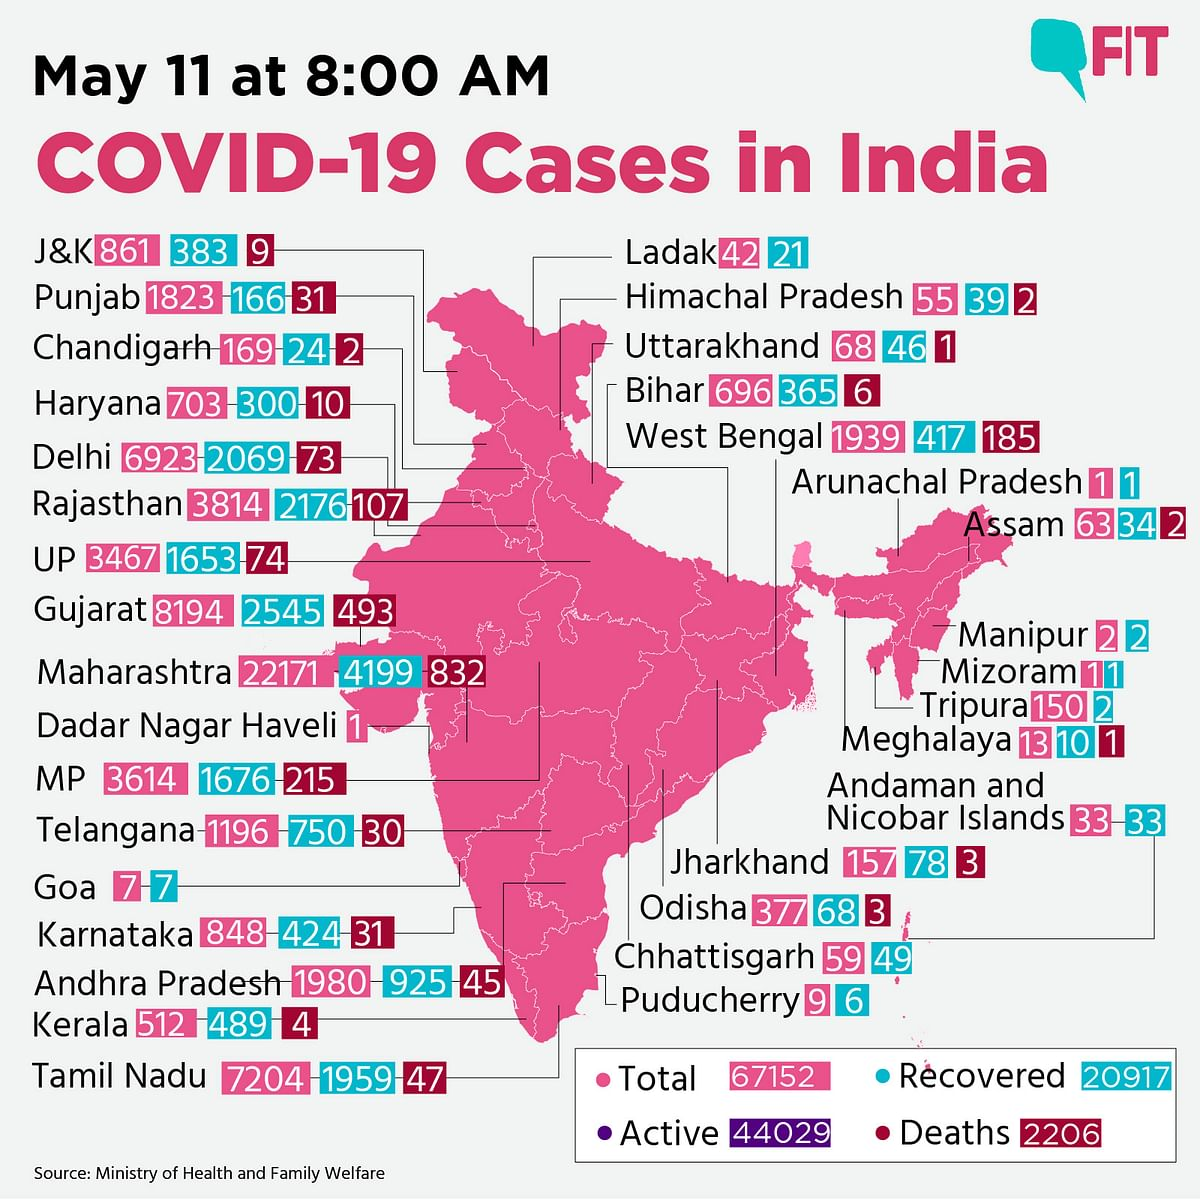 India Updates: Jump in COVID-19 Cases to 67152; Death Toll at 2206